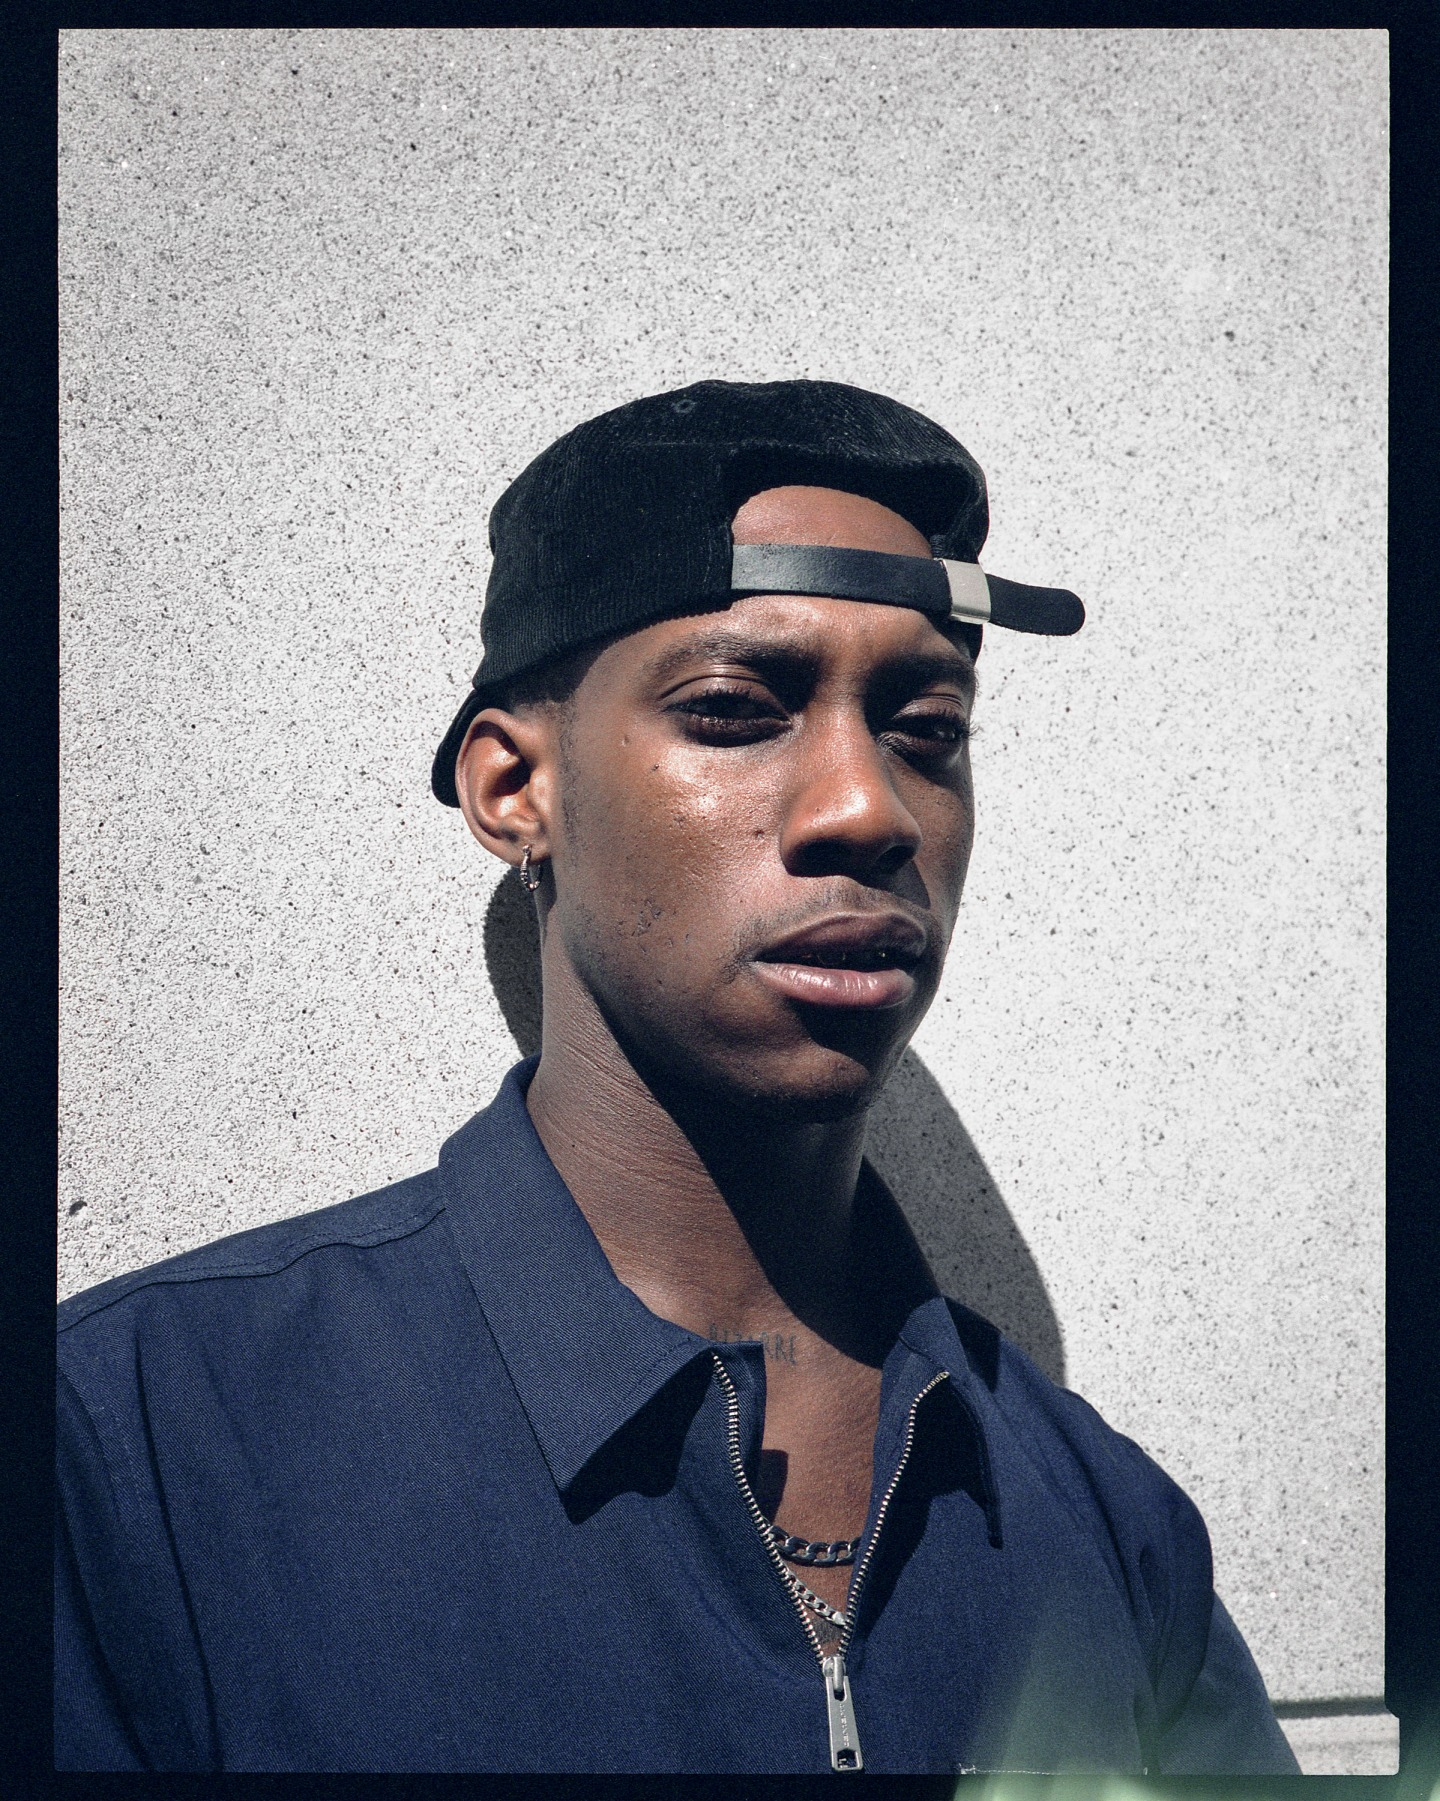 Octavian found his sound, and U.K. rap is better for it